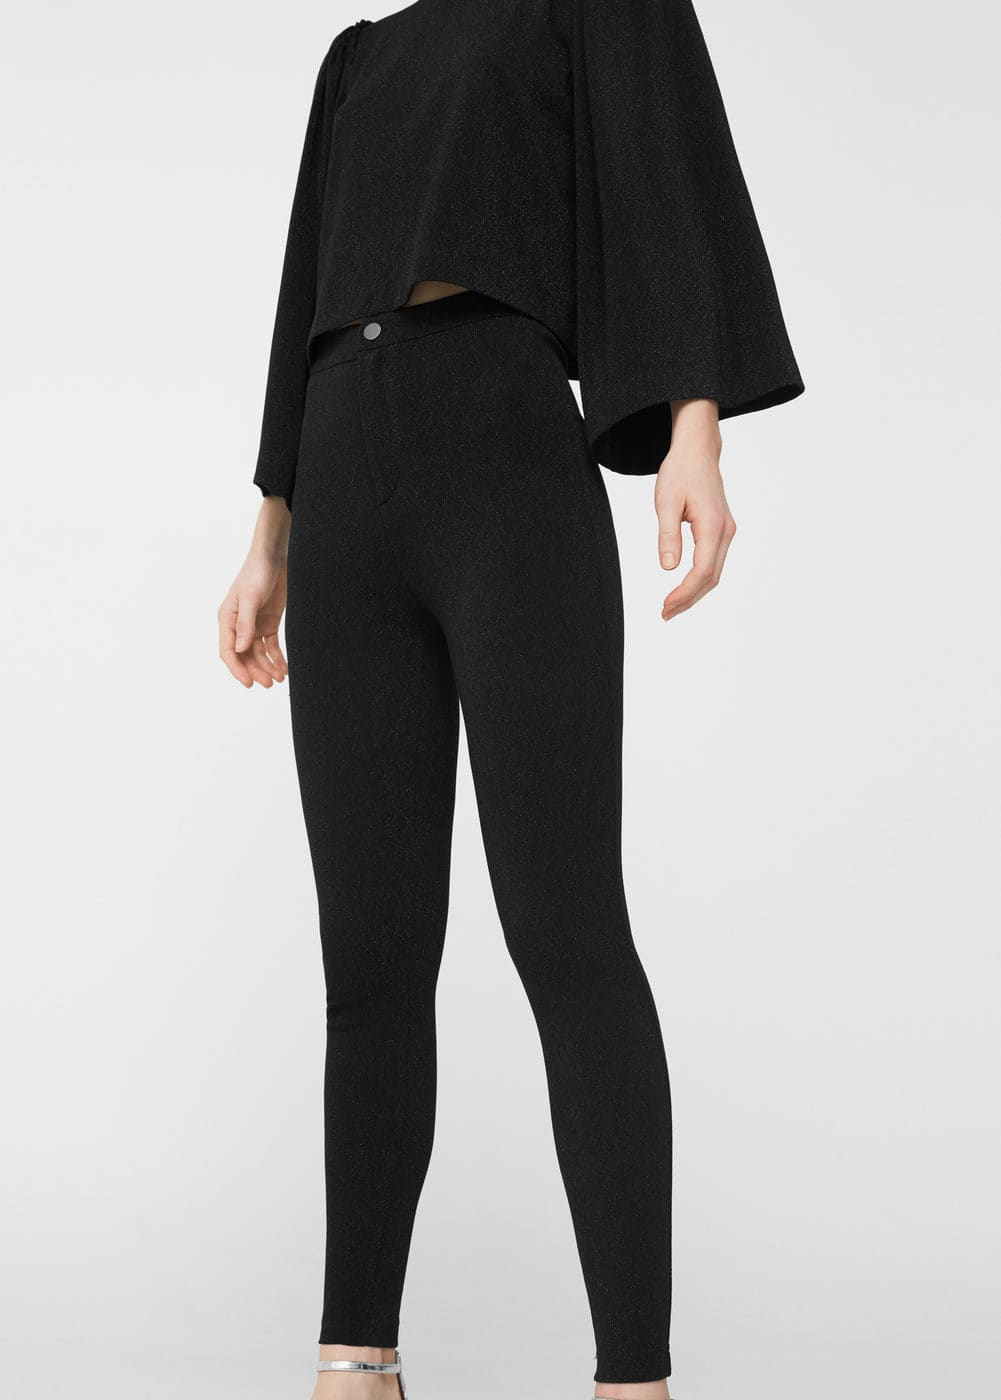 Leggings mit metallic-garn | MANGO